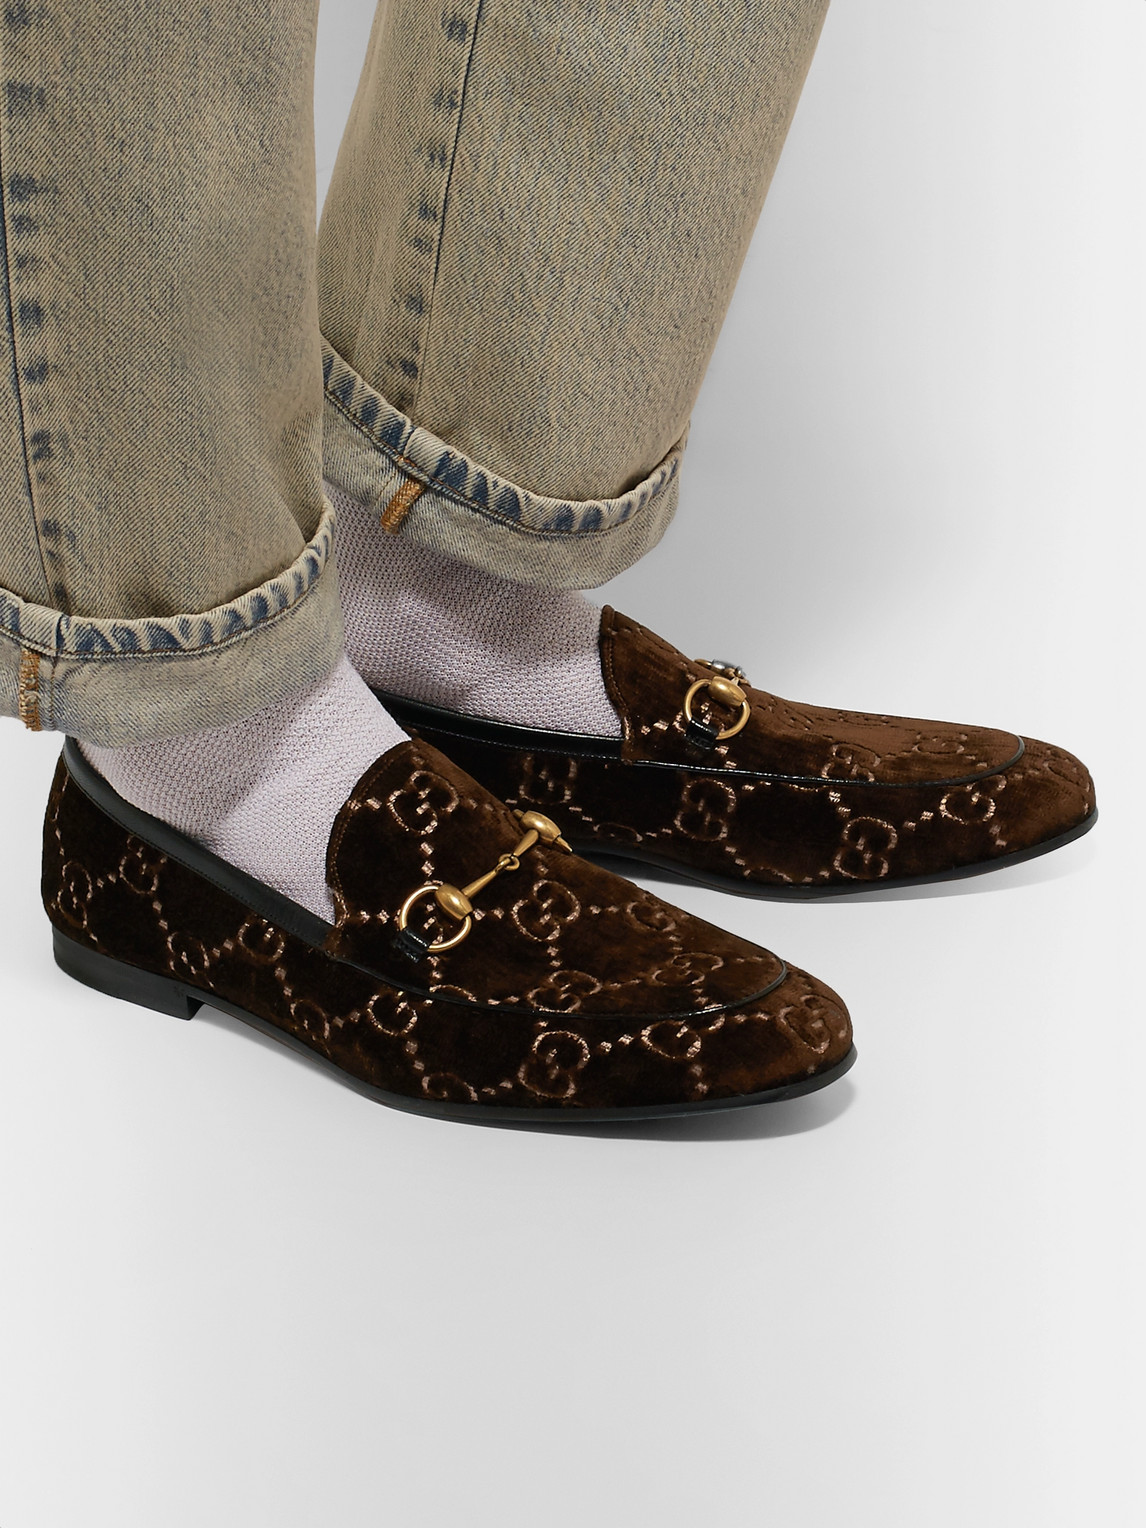 Gucci Loafers NEW JORDAAN HORSEBIT LEATHER-TRIMMED LOGO-EMBROIDERED VELVET LOAFERS